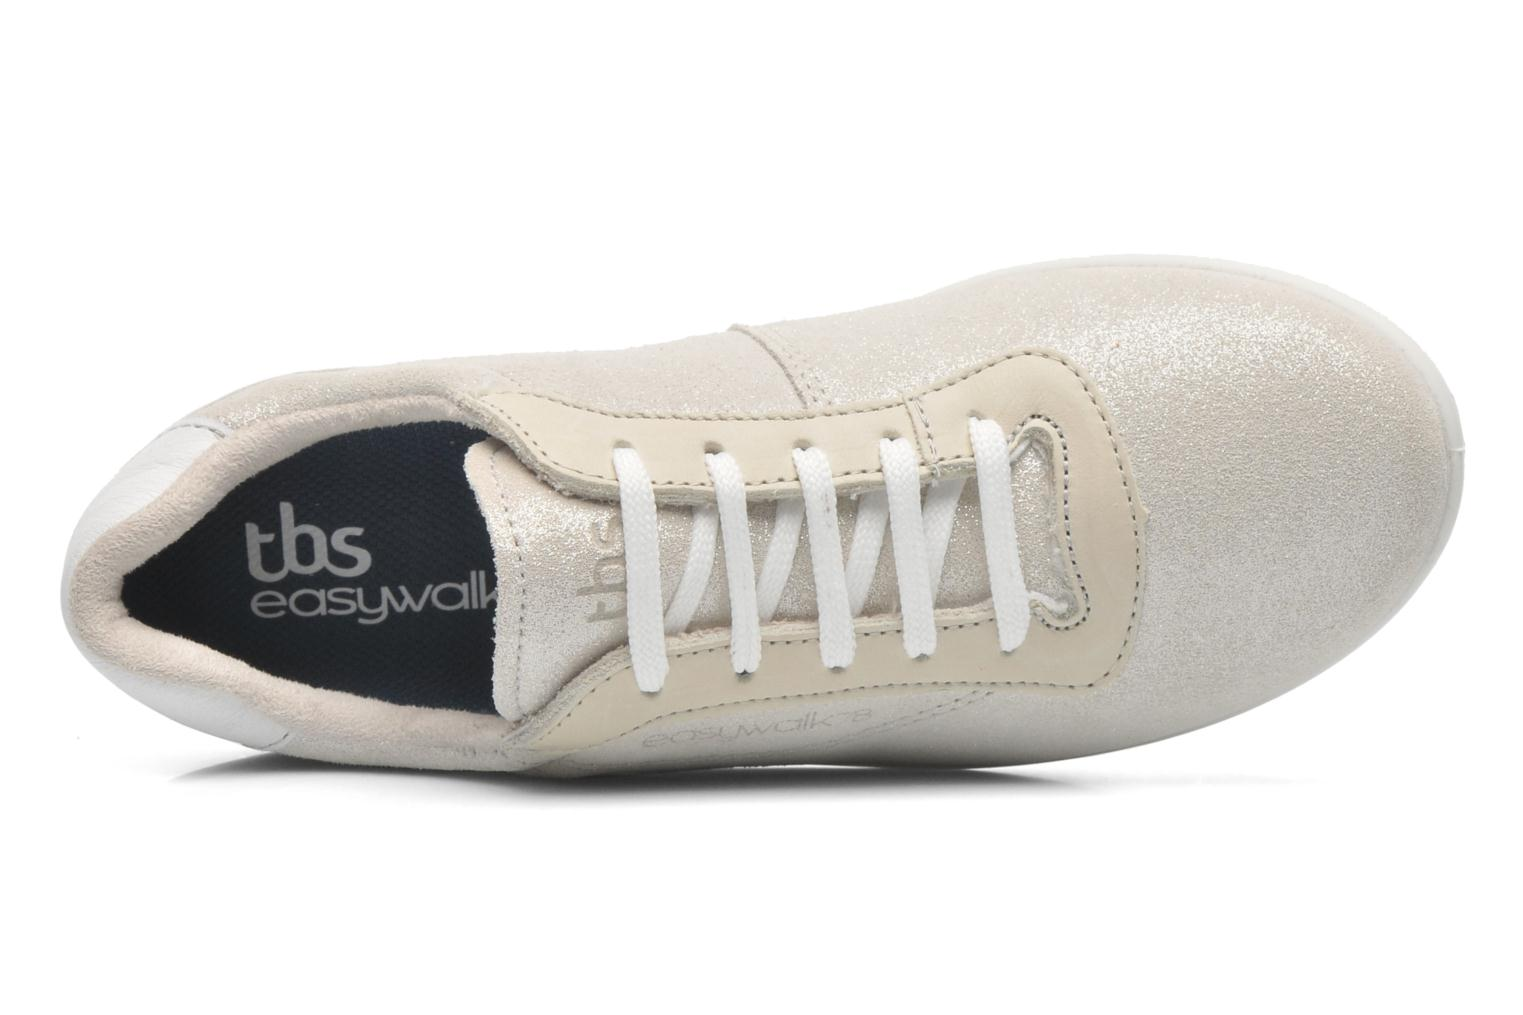 tbs easy walk anyway trainers in white at 214613. Black Bedroom Furniture Sets. Home Design Ideas